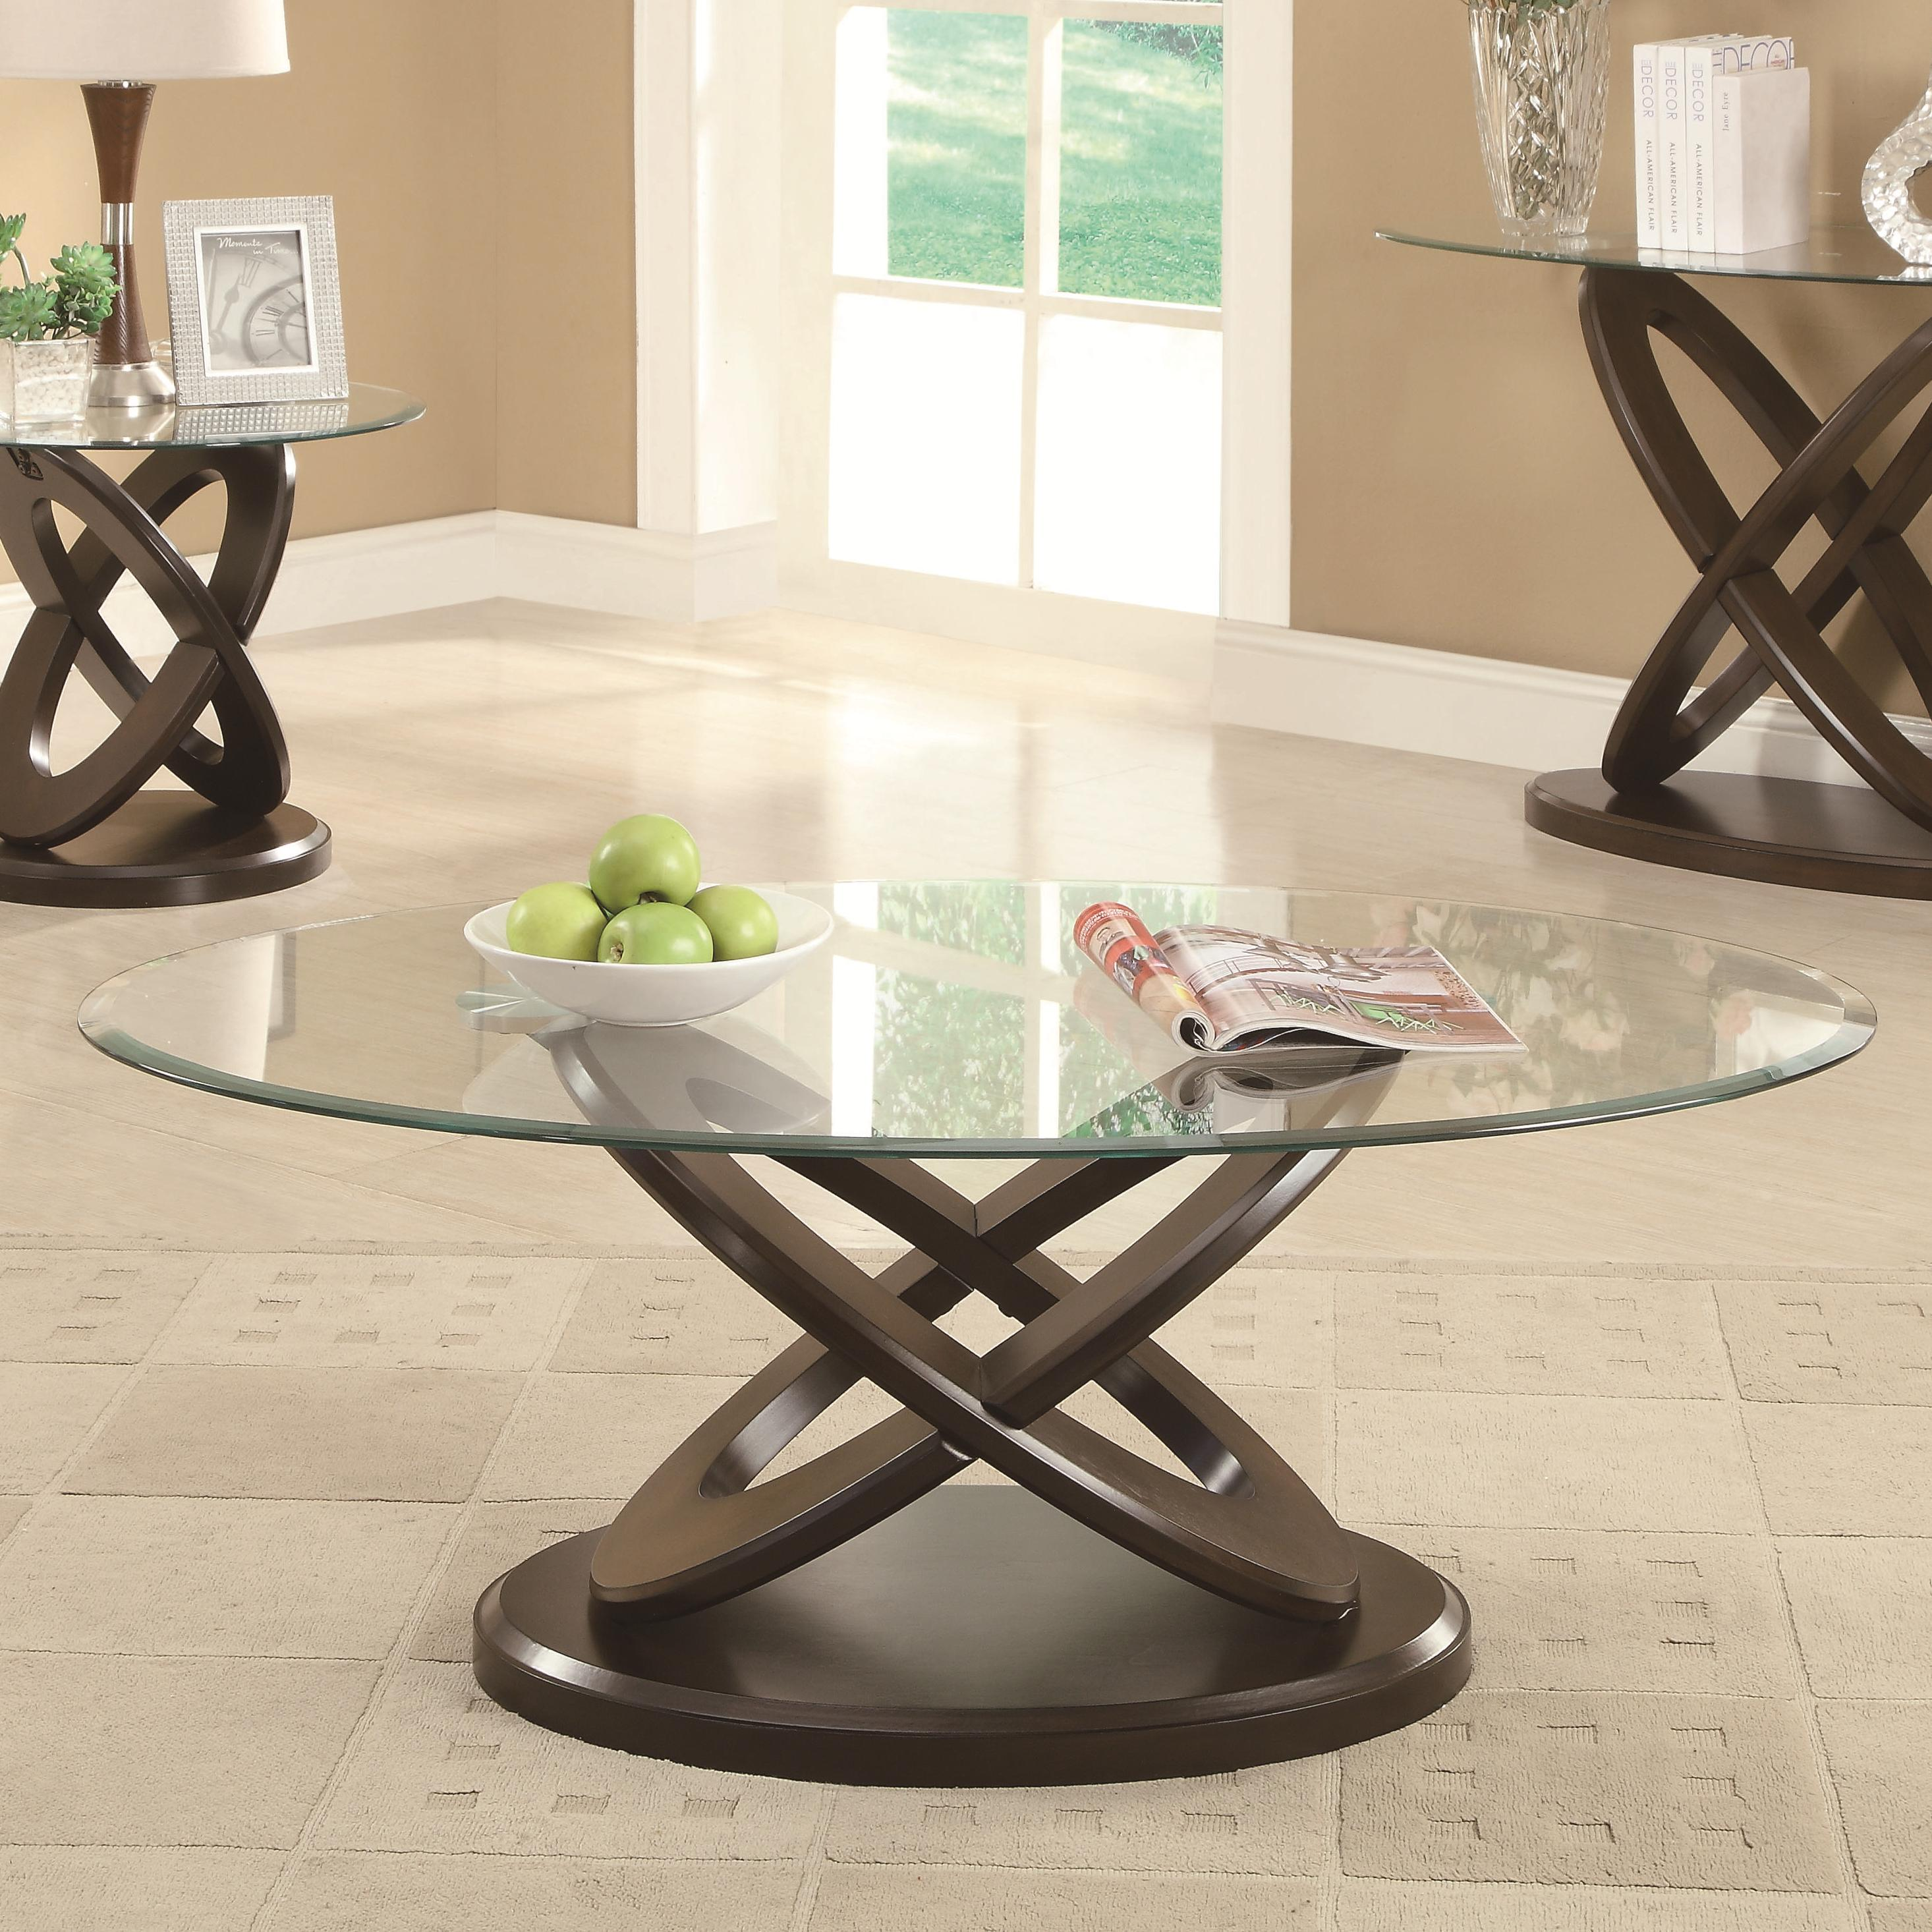 702788 glass top intersecting ring coffee table